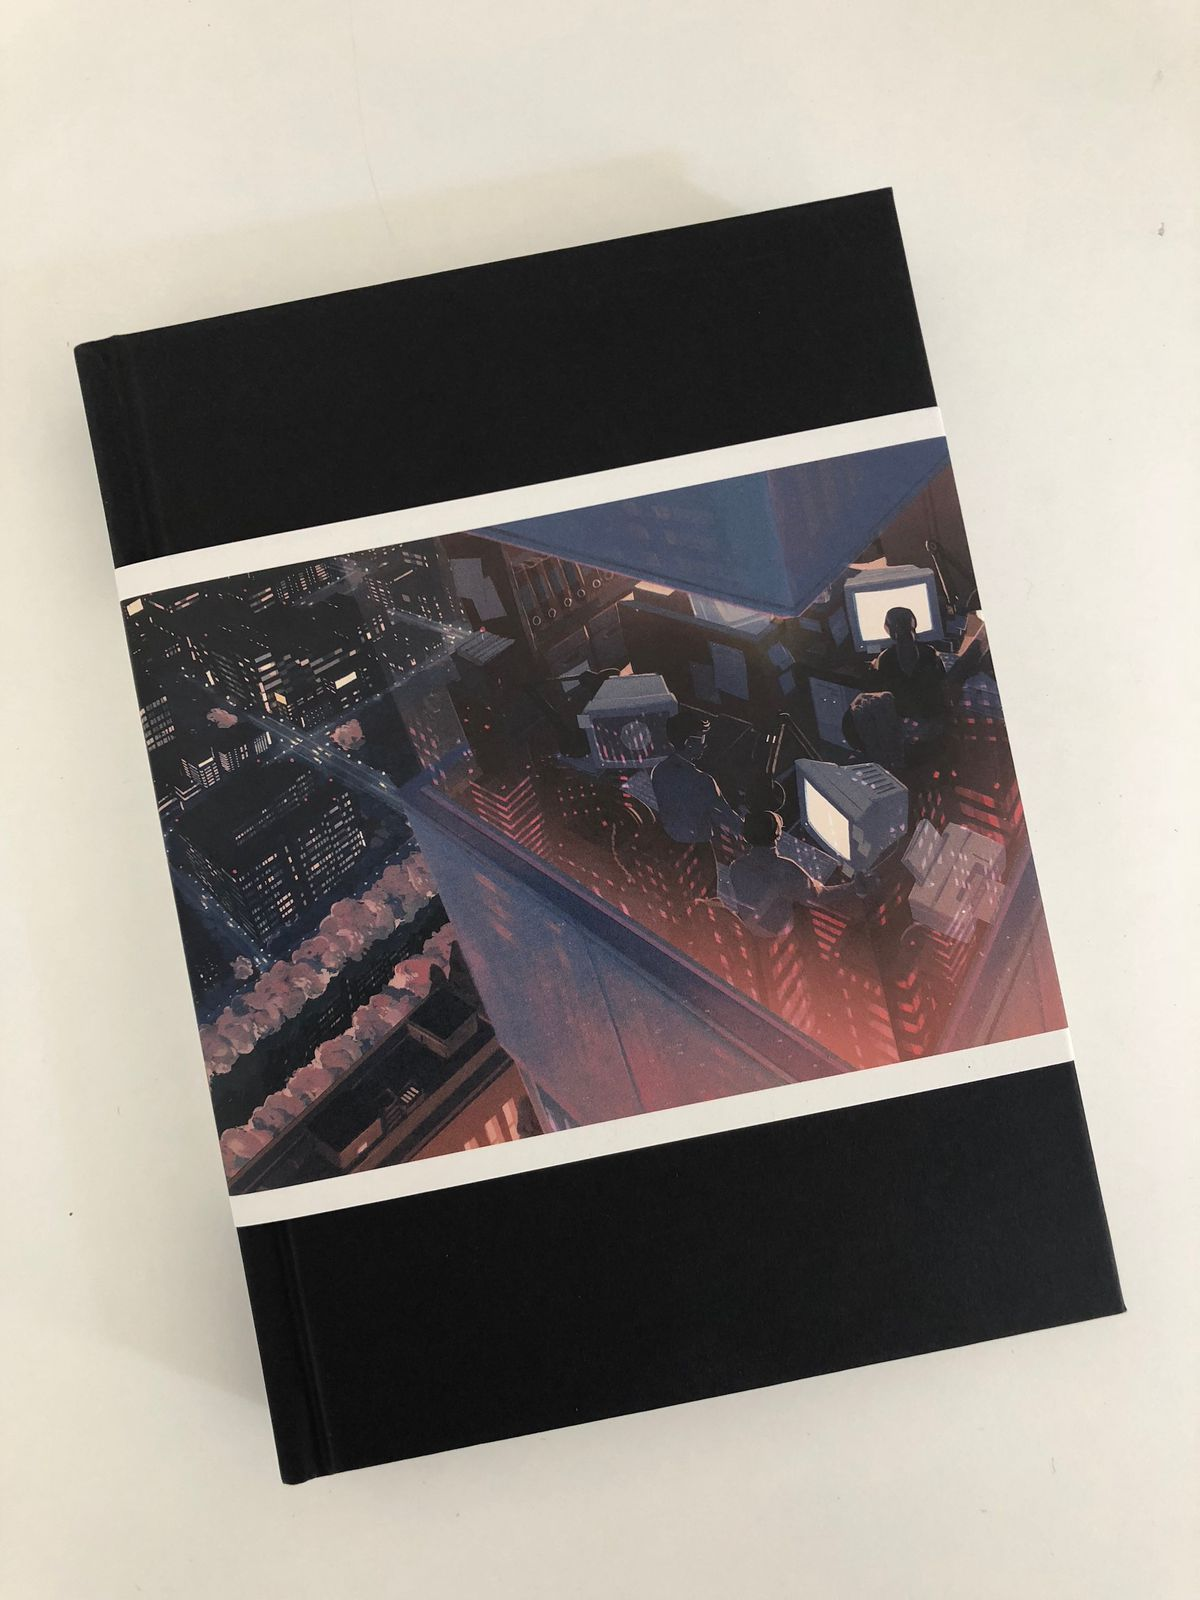 500 Years Later: An Oral History of Final Fantasy VII - photo of book with belly band wrapping